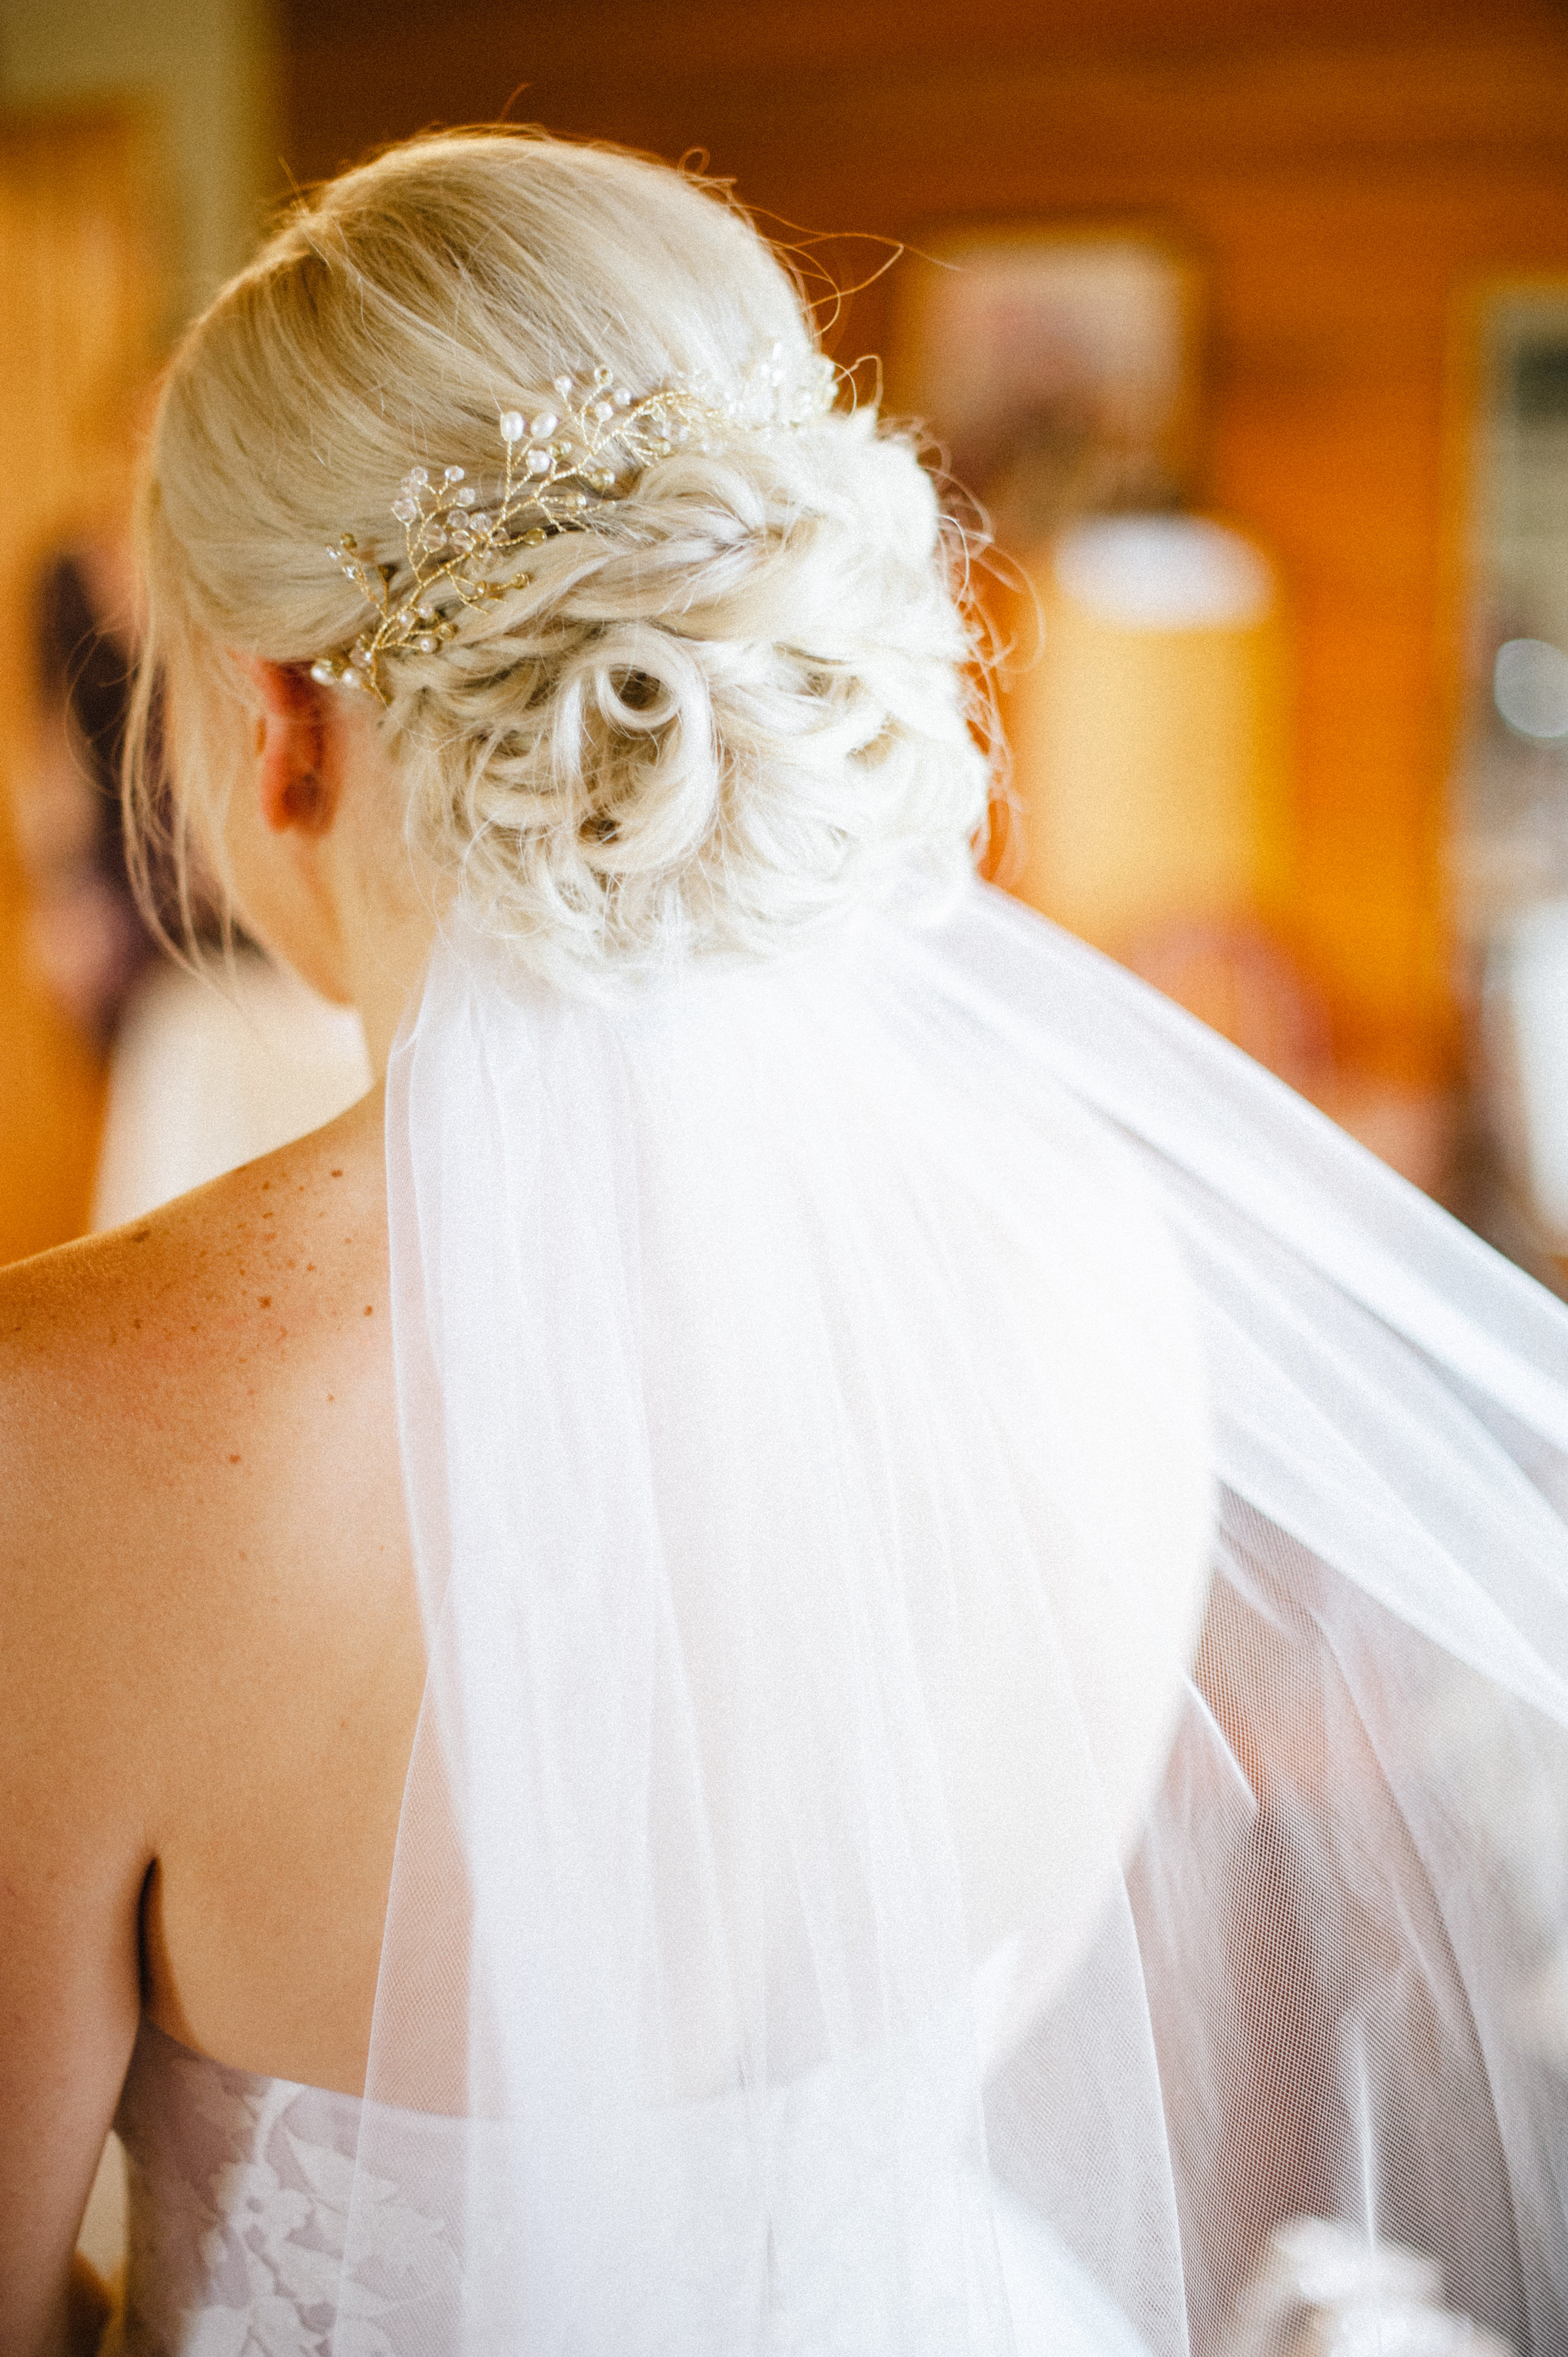 Wedding hairstyle up-do by Lauren Howard